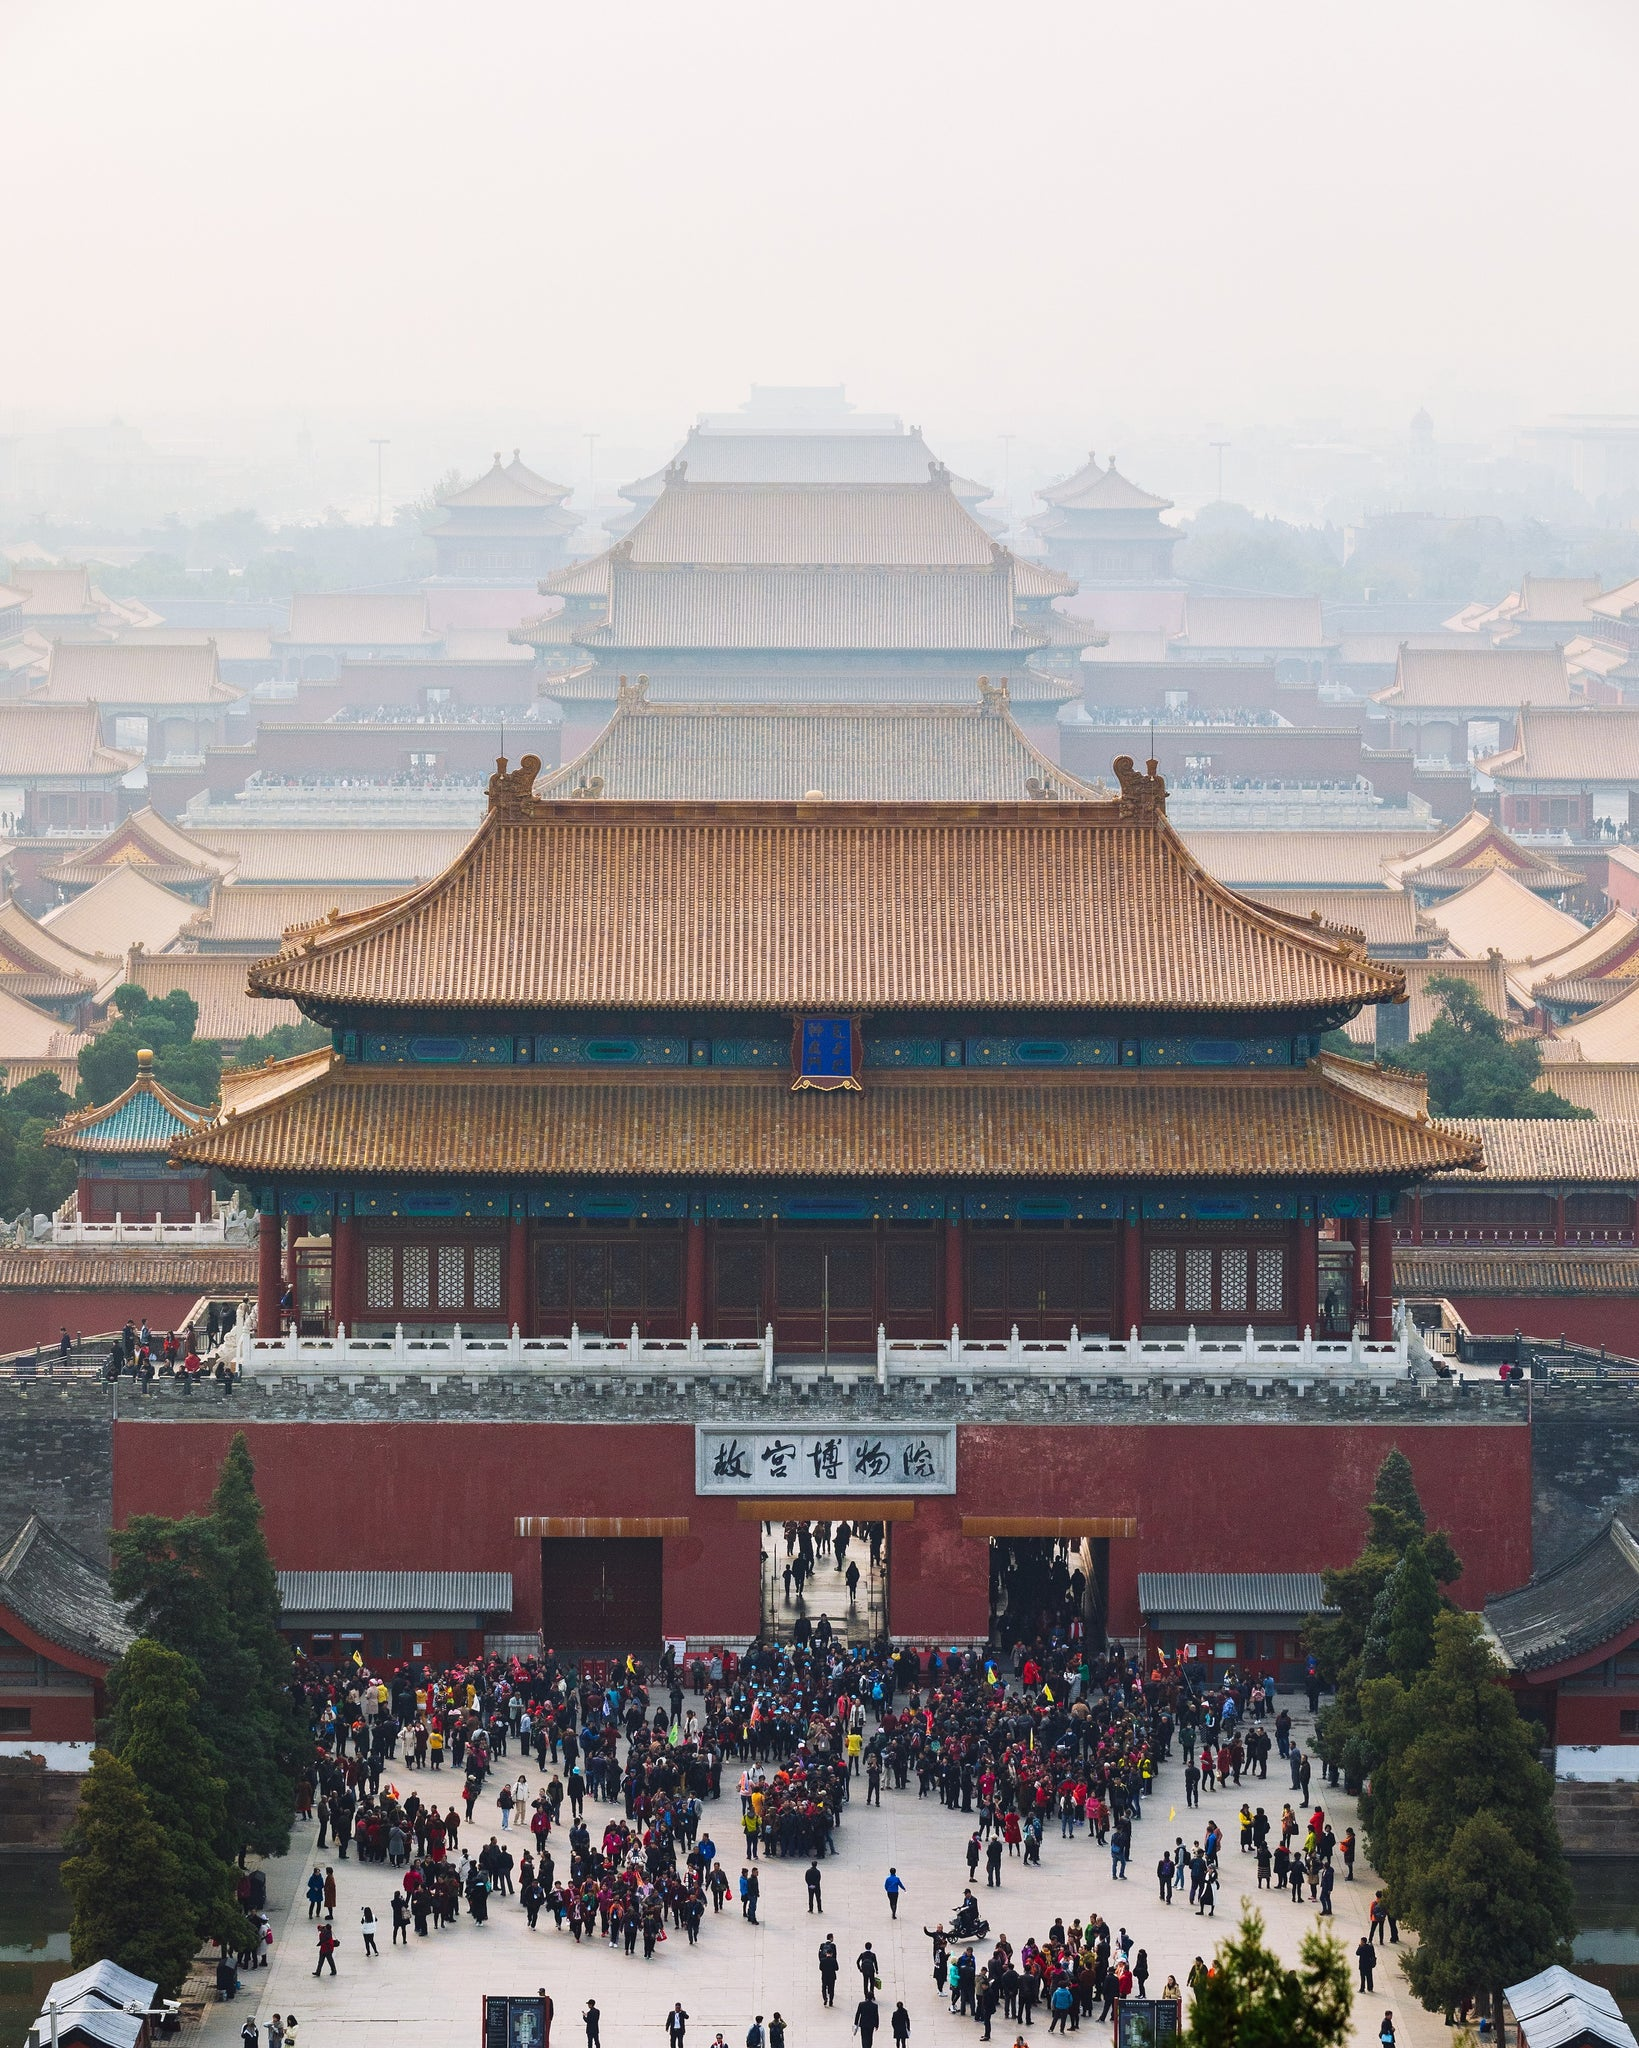 View of the Forbidden City from Jingshan Park, Beijing, China